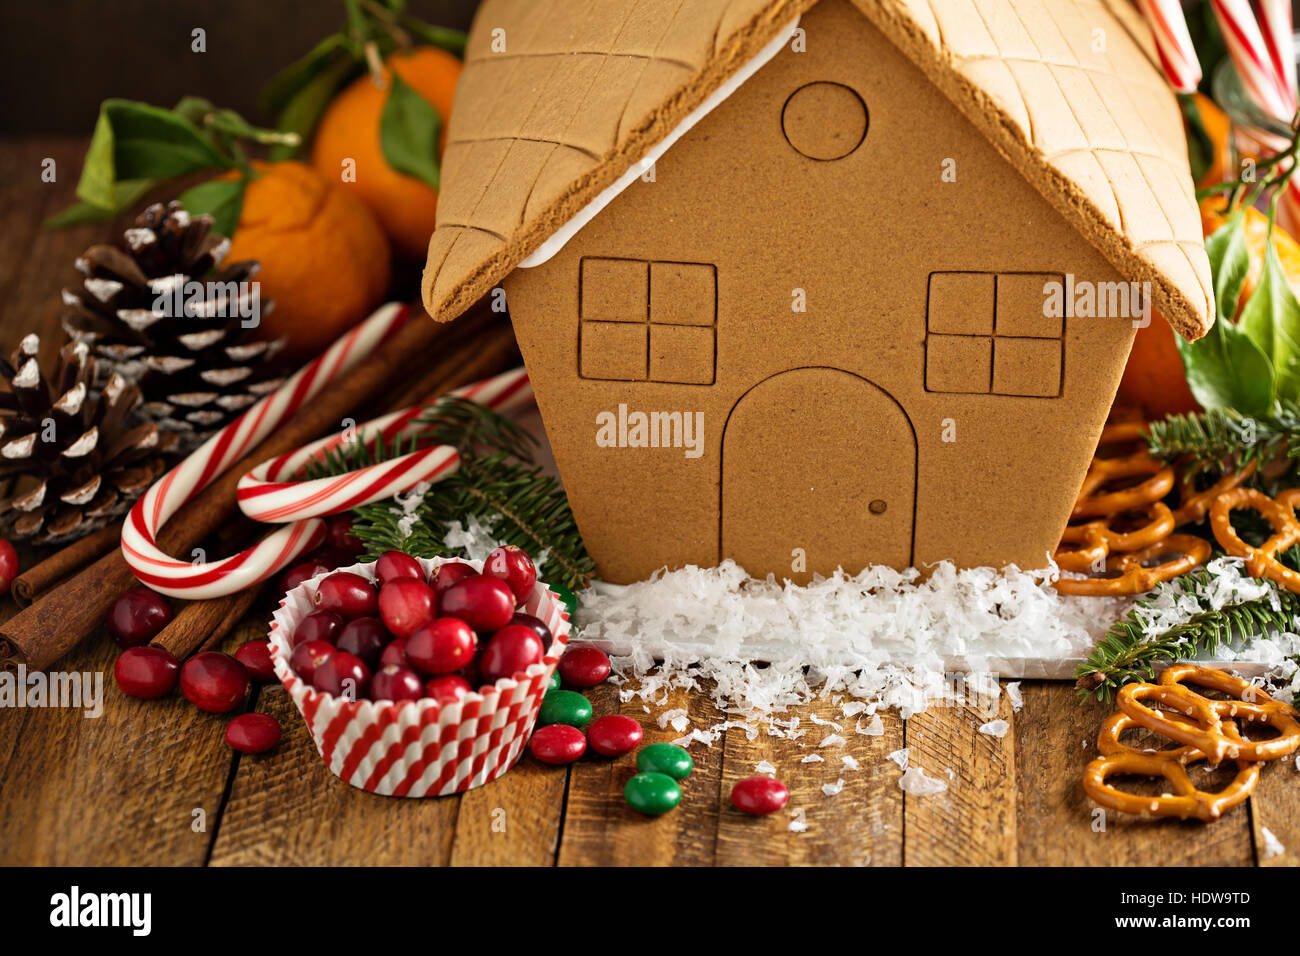 Gingerbead house ready to be decorated with candy - Stock Image